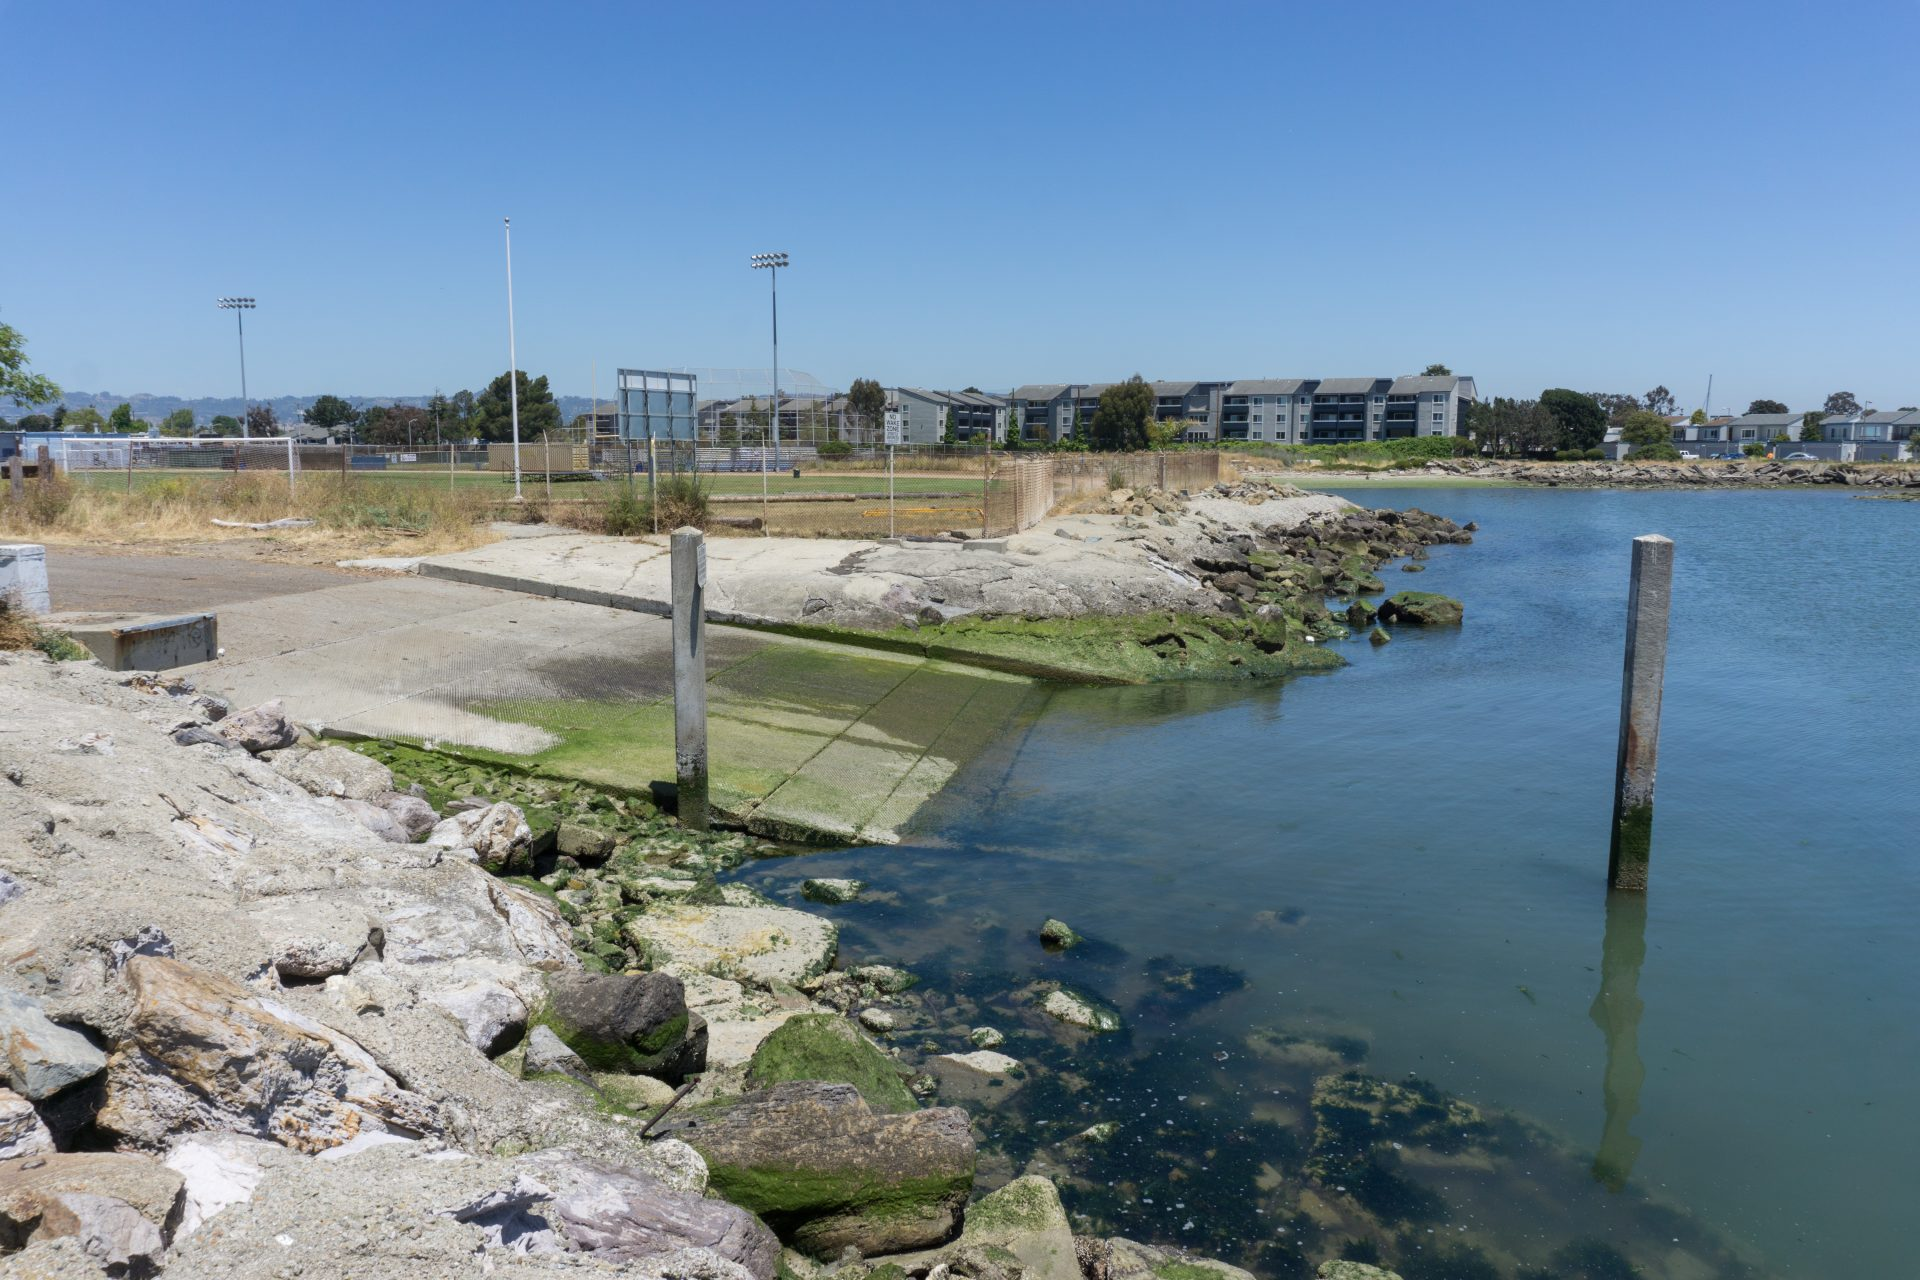 riprap foreground, then concrete boat ramp descending into water